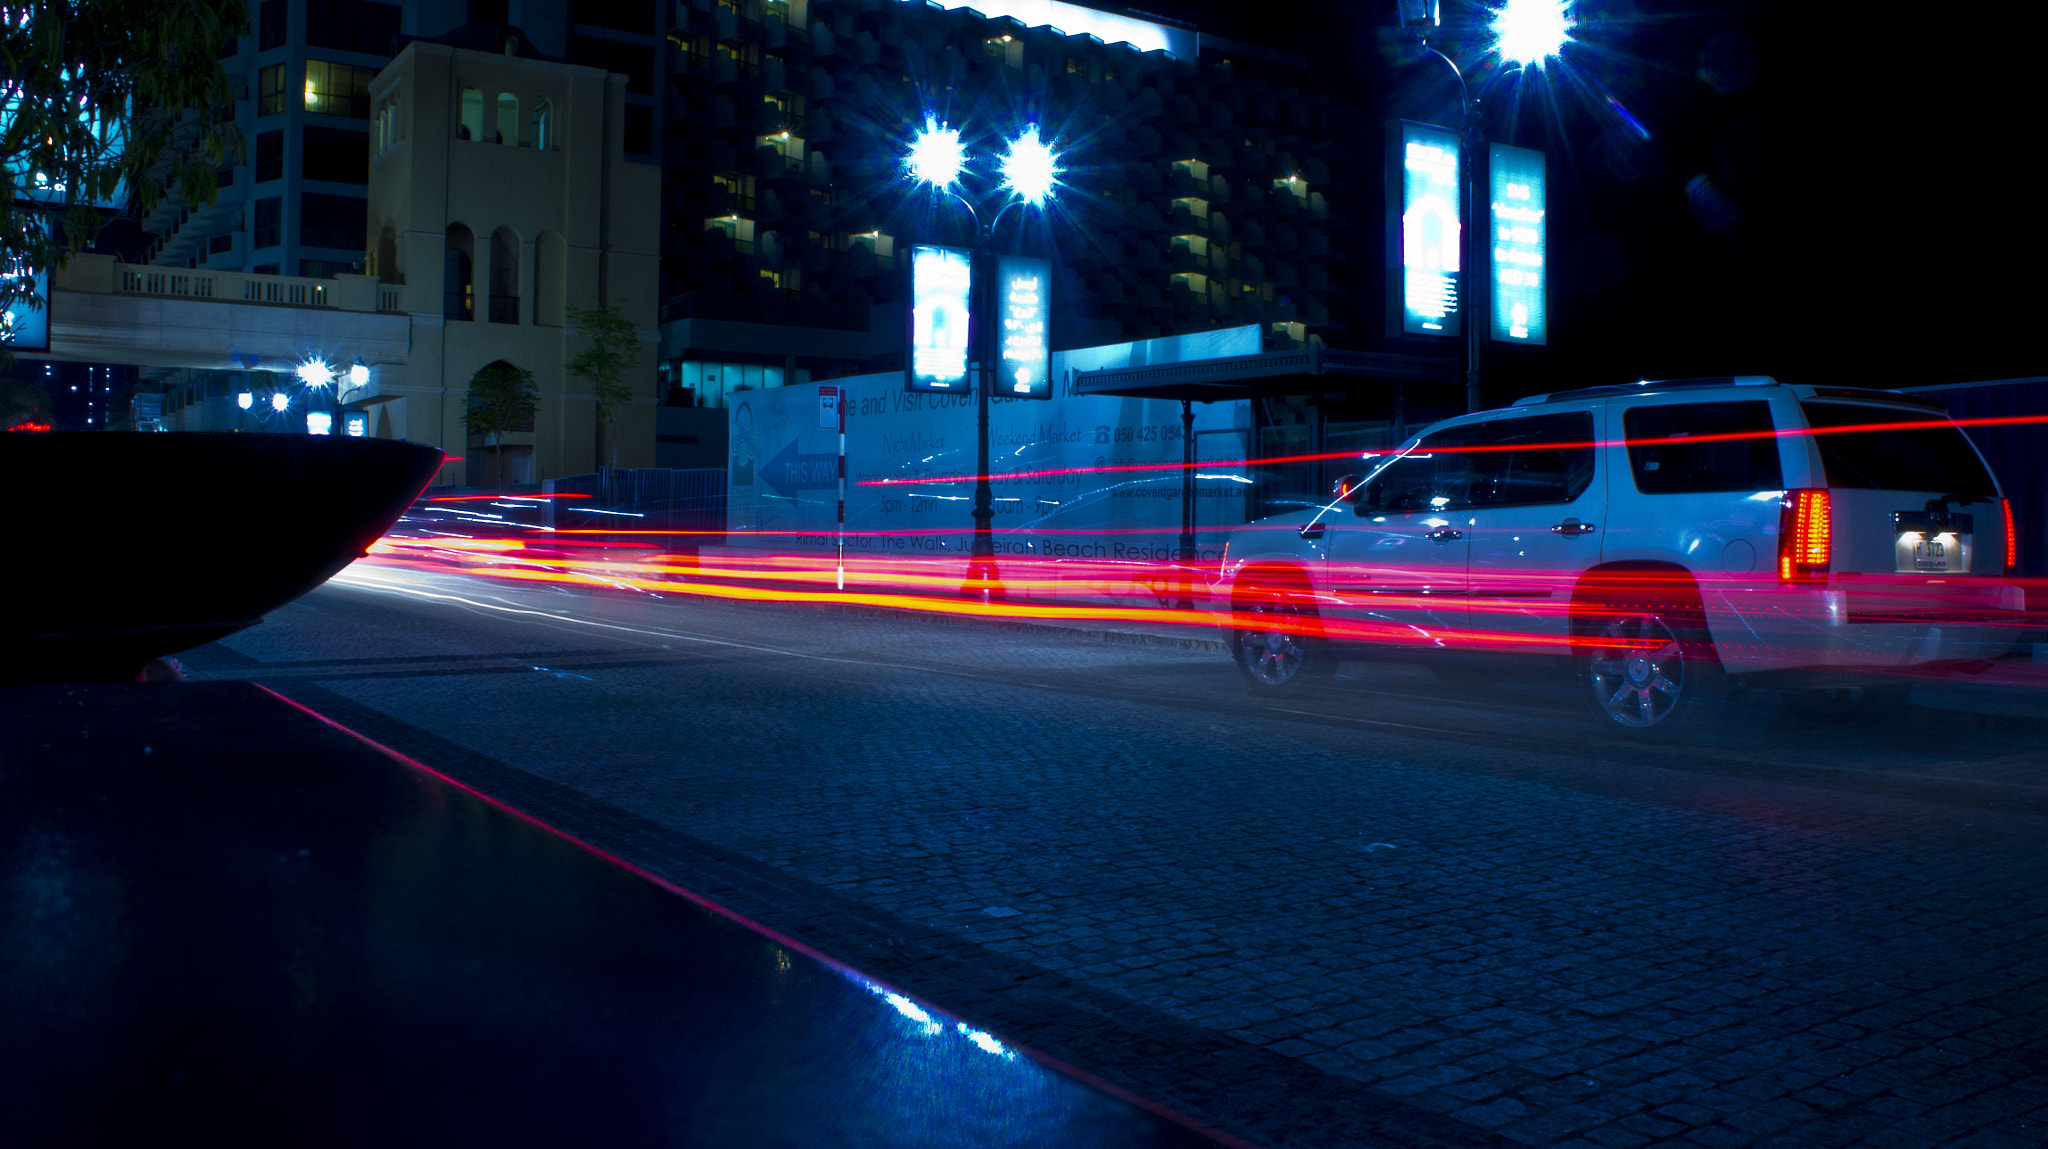 Photograph car light trails at night by Steven Ellis on 500px